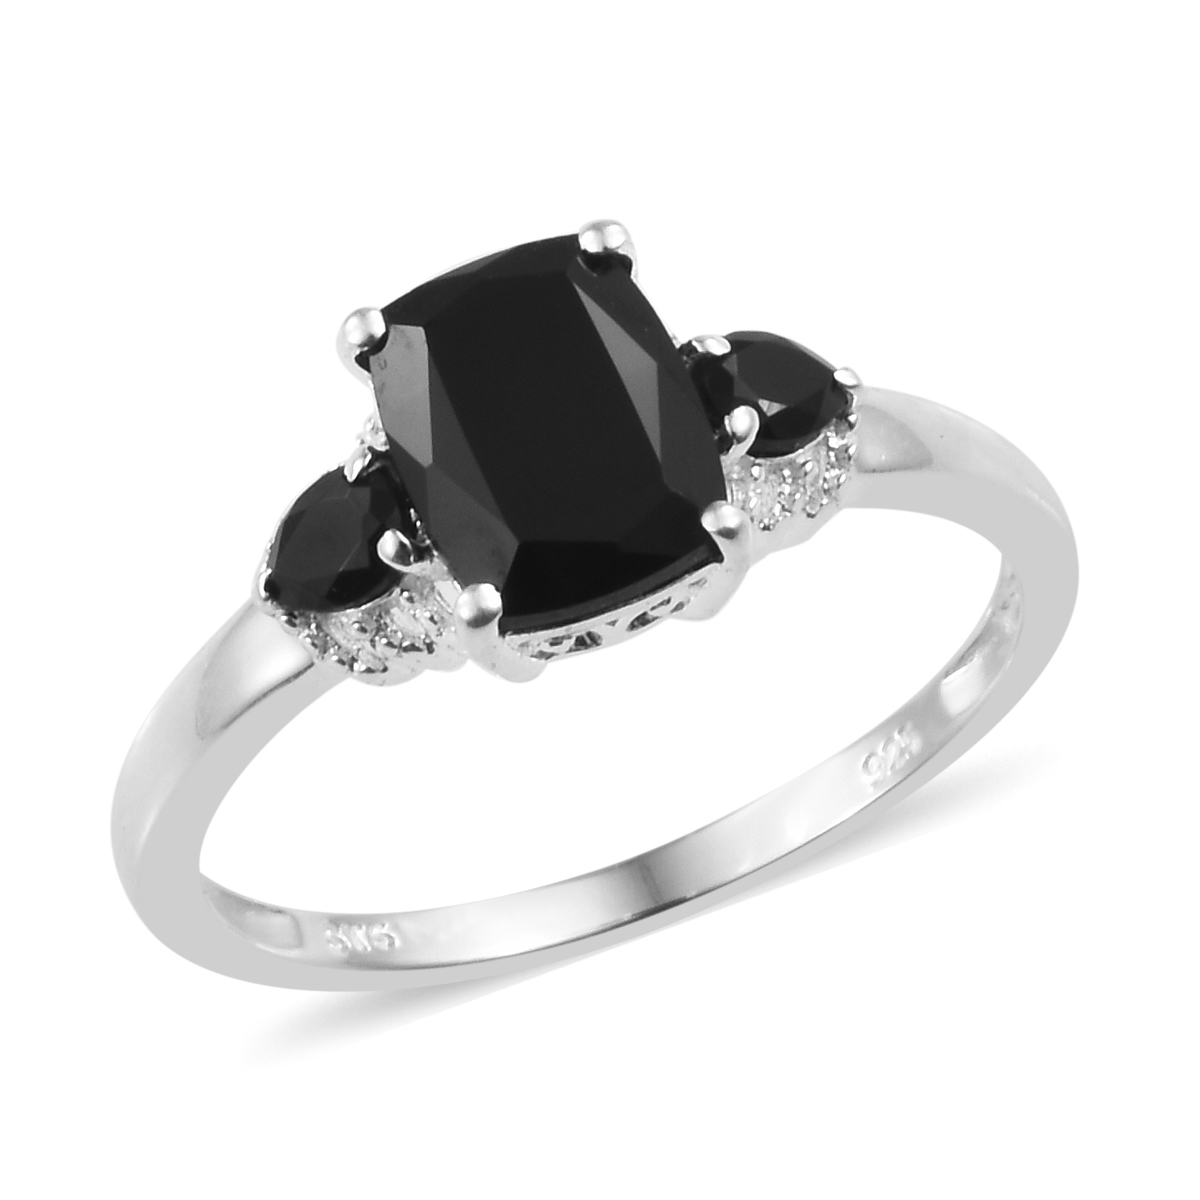 Thai Black Spinel Ring In Sterling Silver Size 5 0 3 19